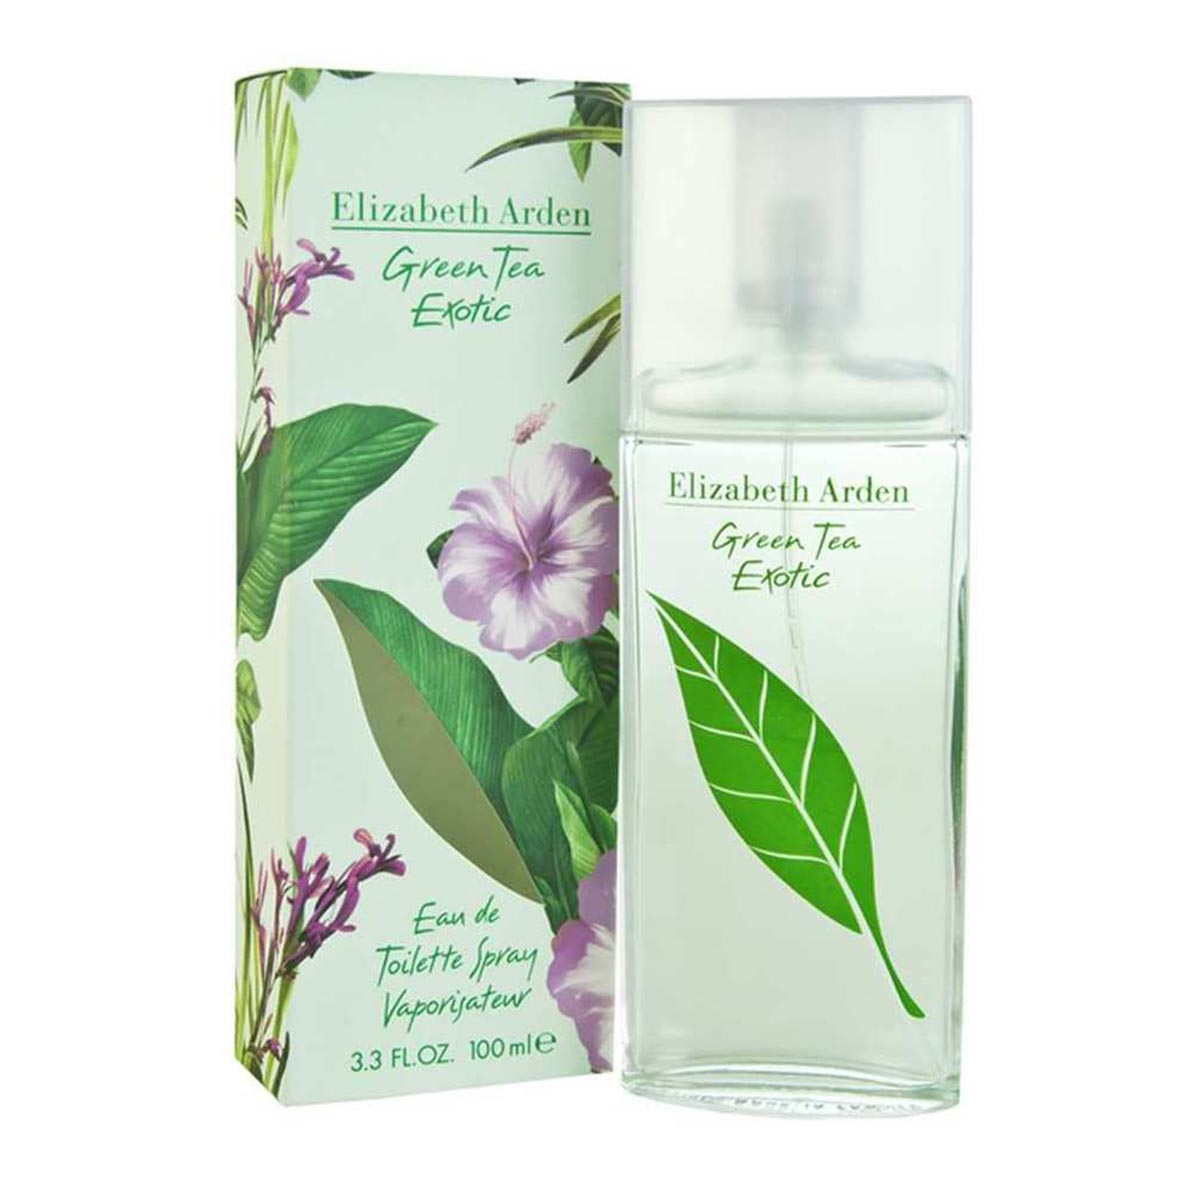 Elizabeth arden green tea exotic eau de toilette 100ml vaporizador